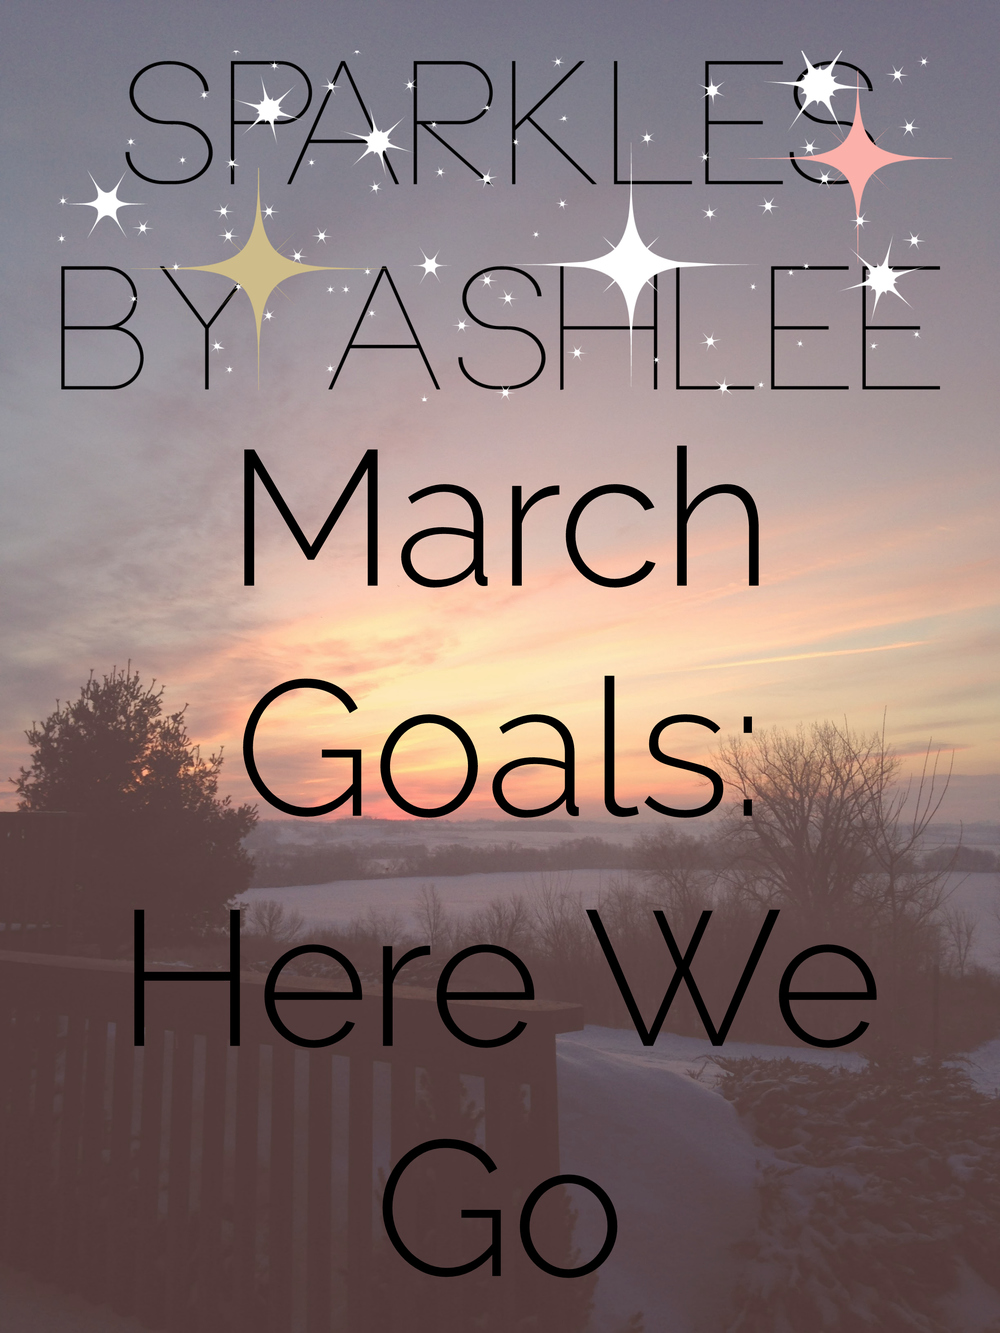 March-Goals-Here-We-Go-Sparkles-by-Ashlee.jpg